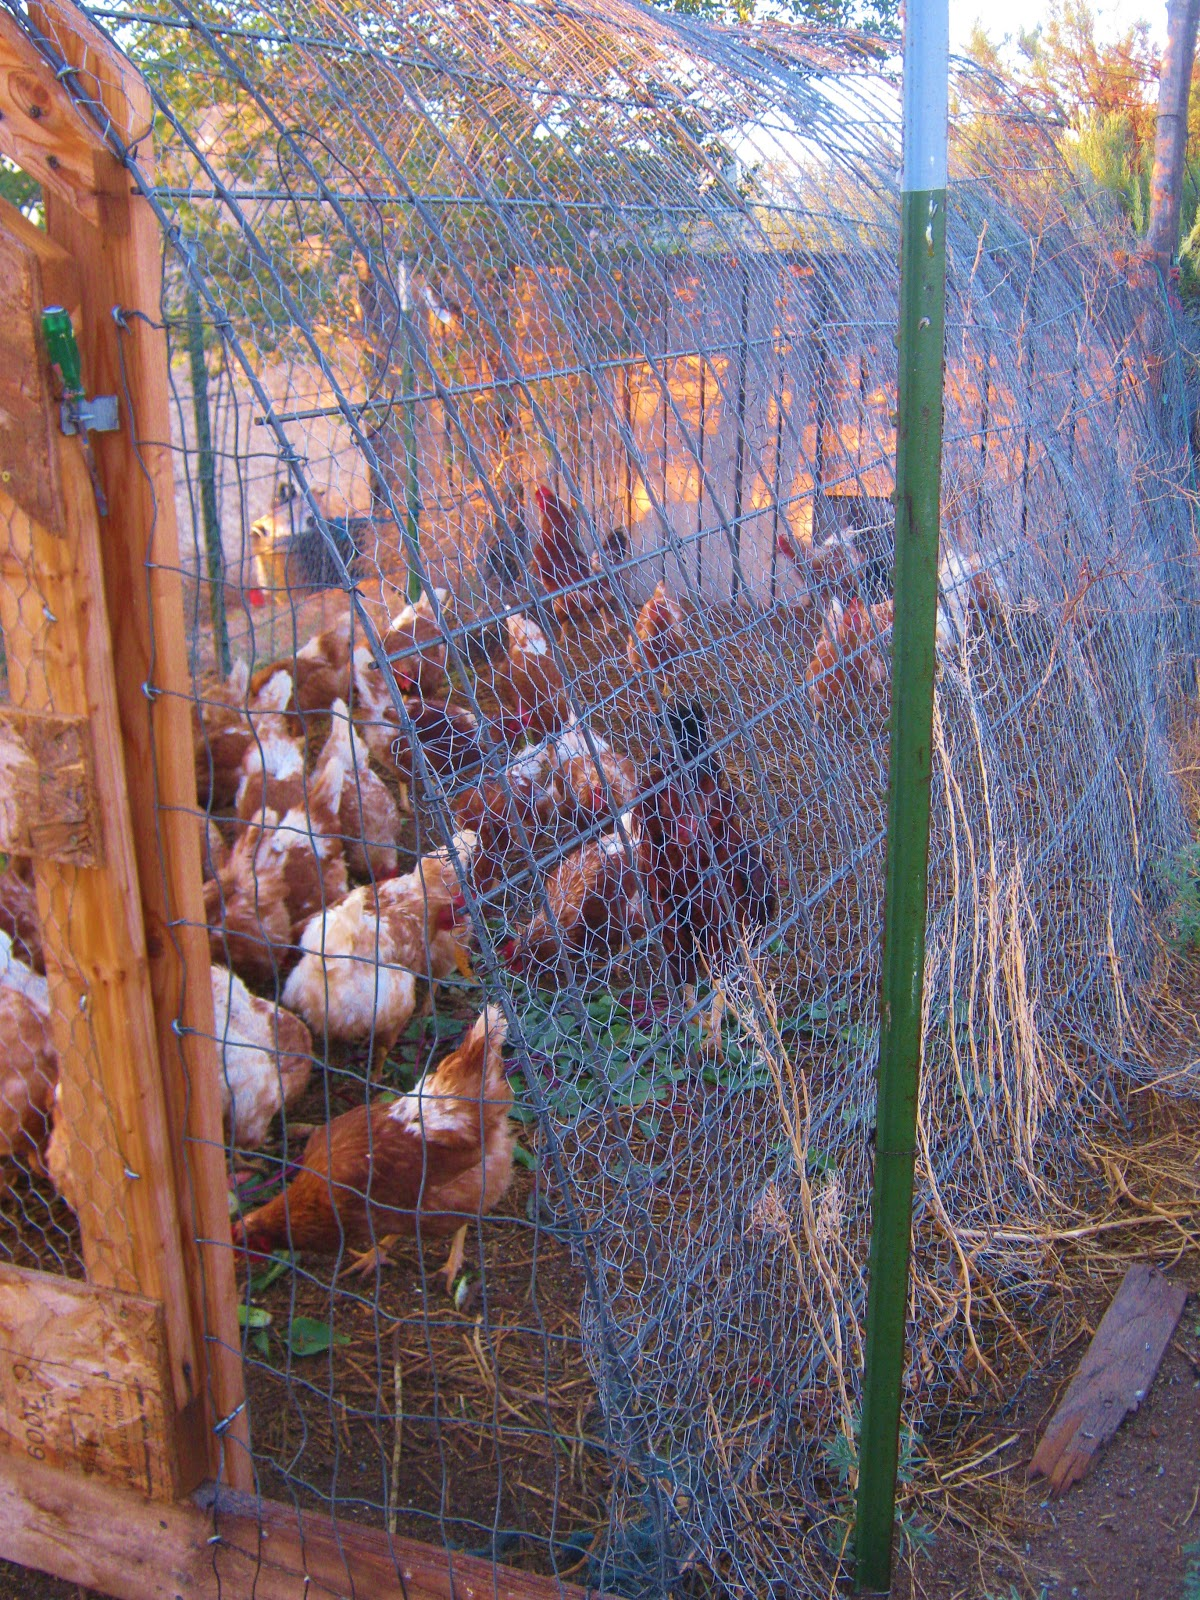 Cricket Song Farm Chicken Run Made From Cattle Panels